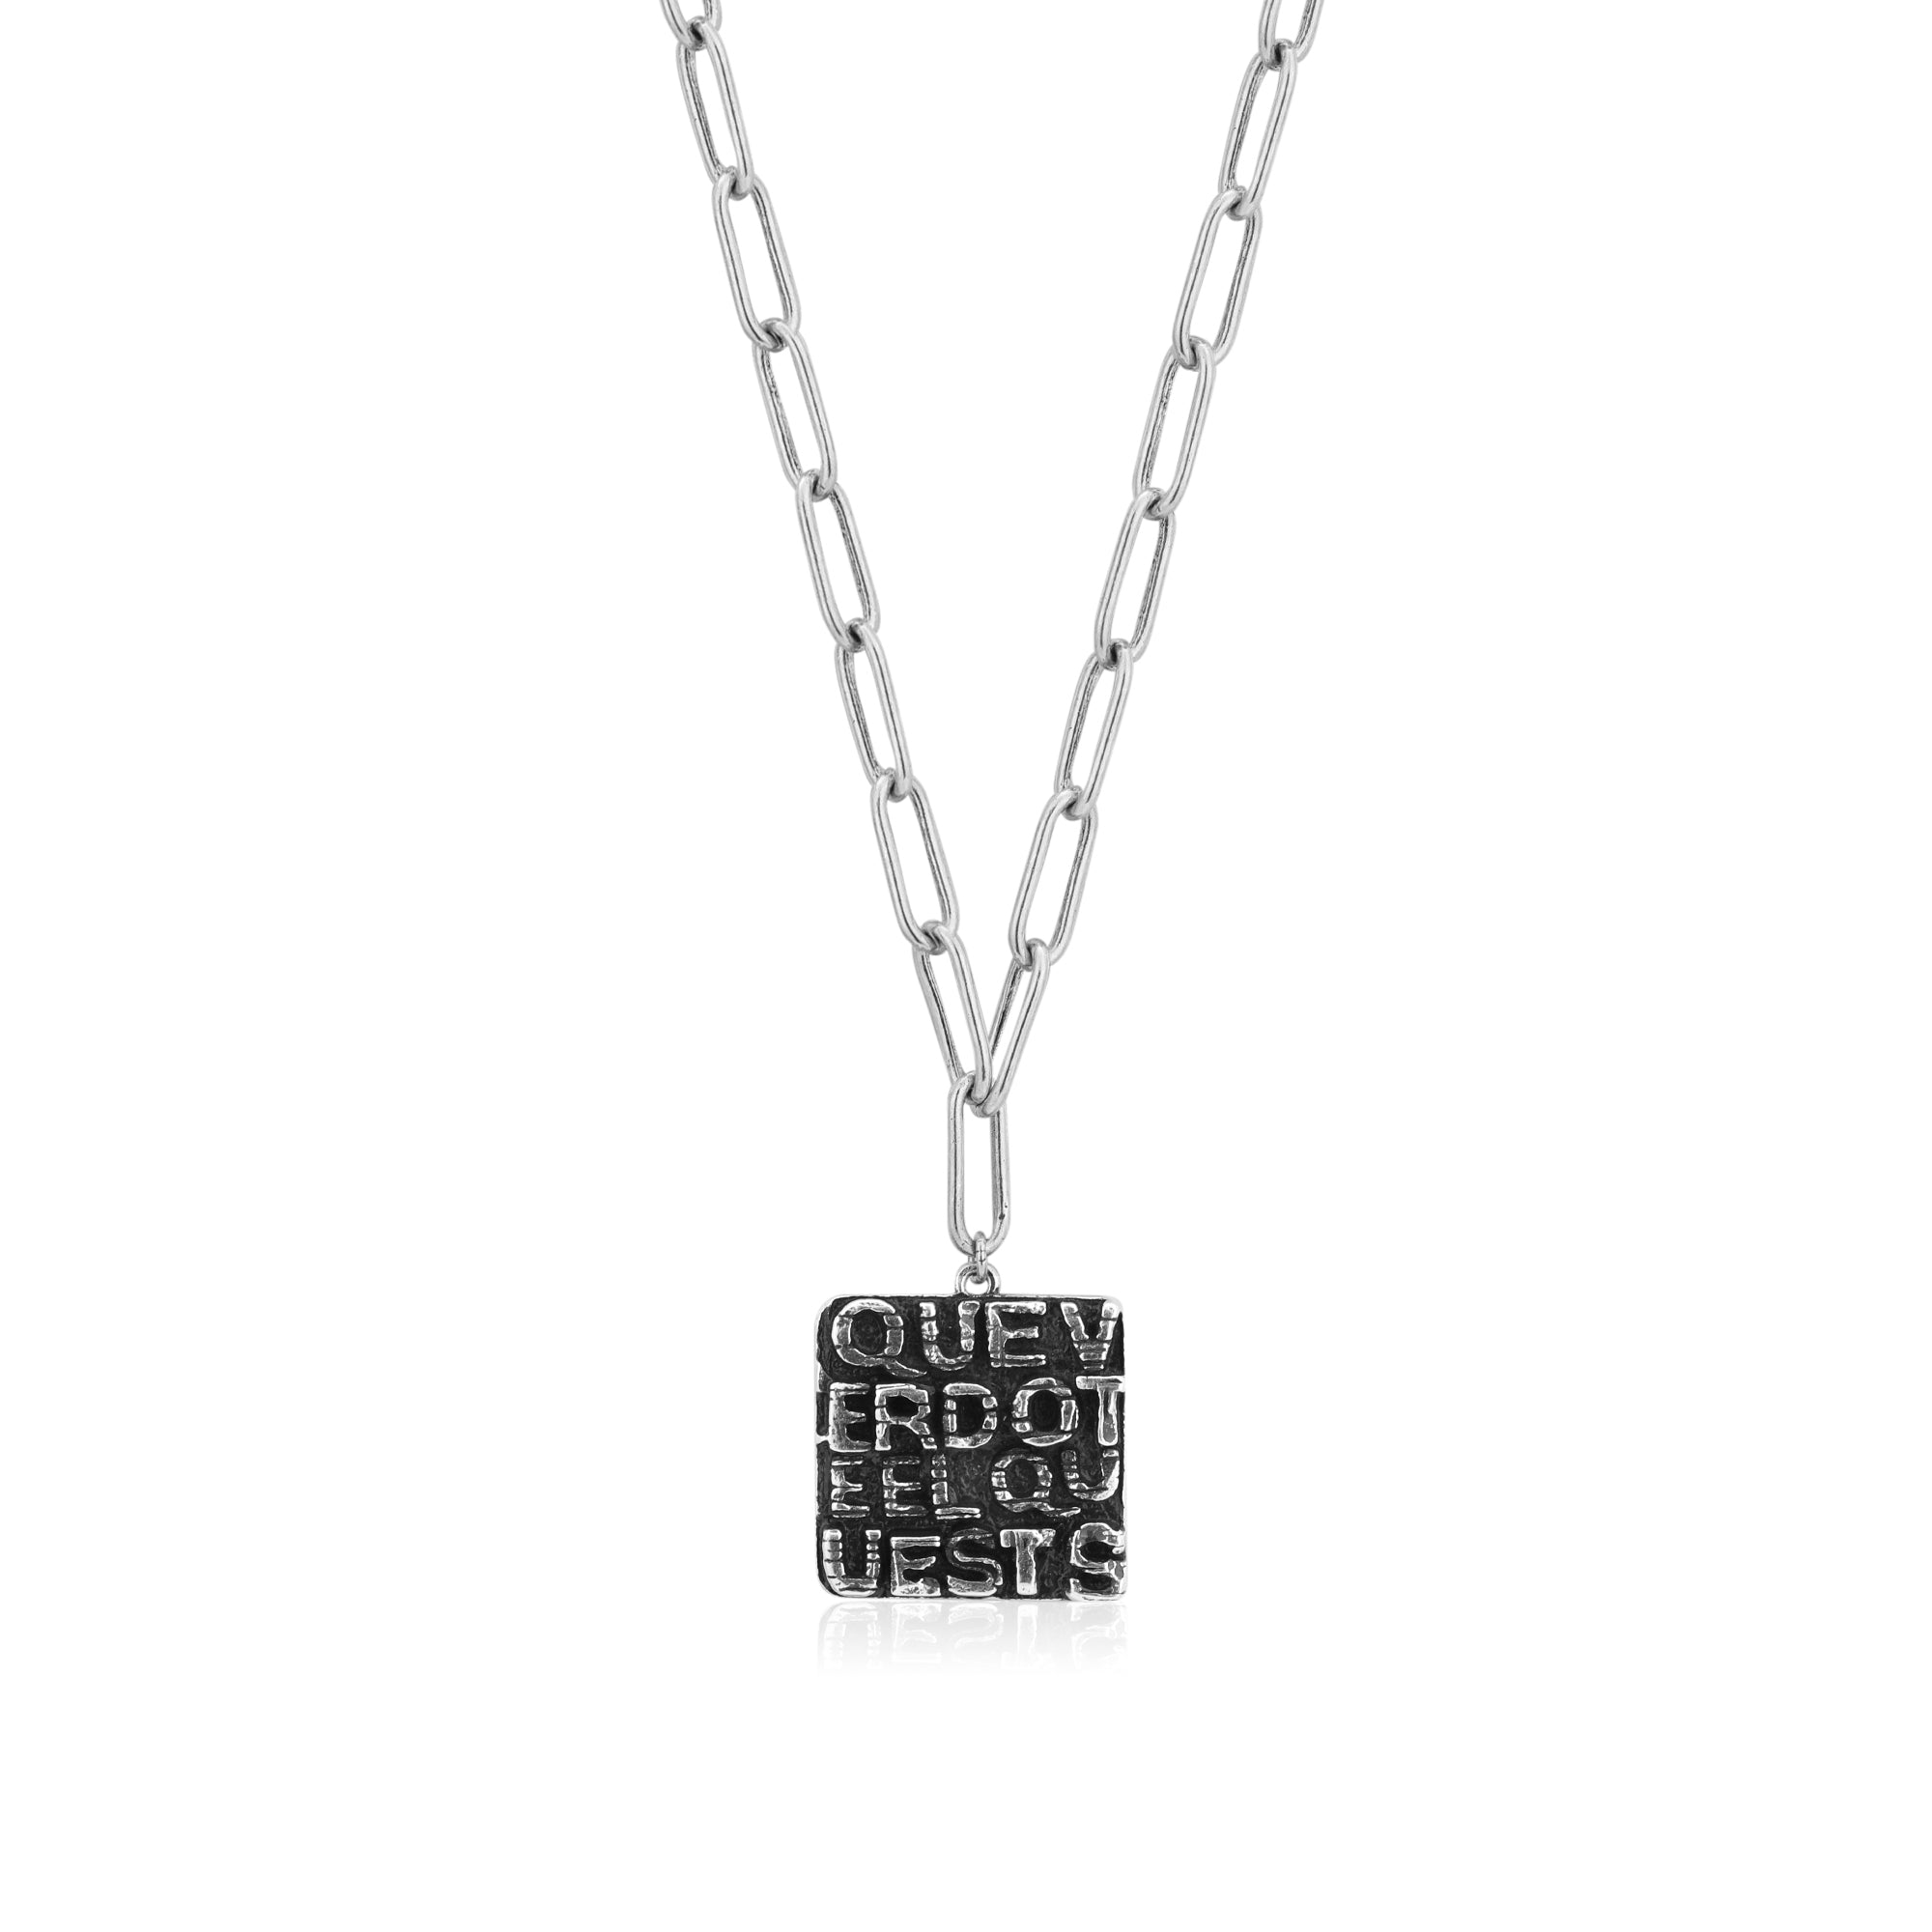 Square Lettered Pendant Long Link Chain Necklace